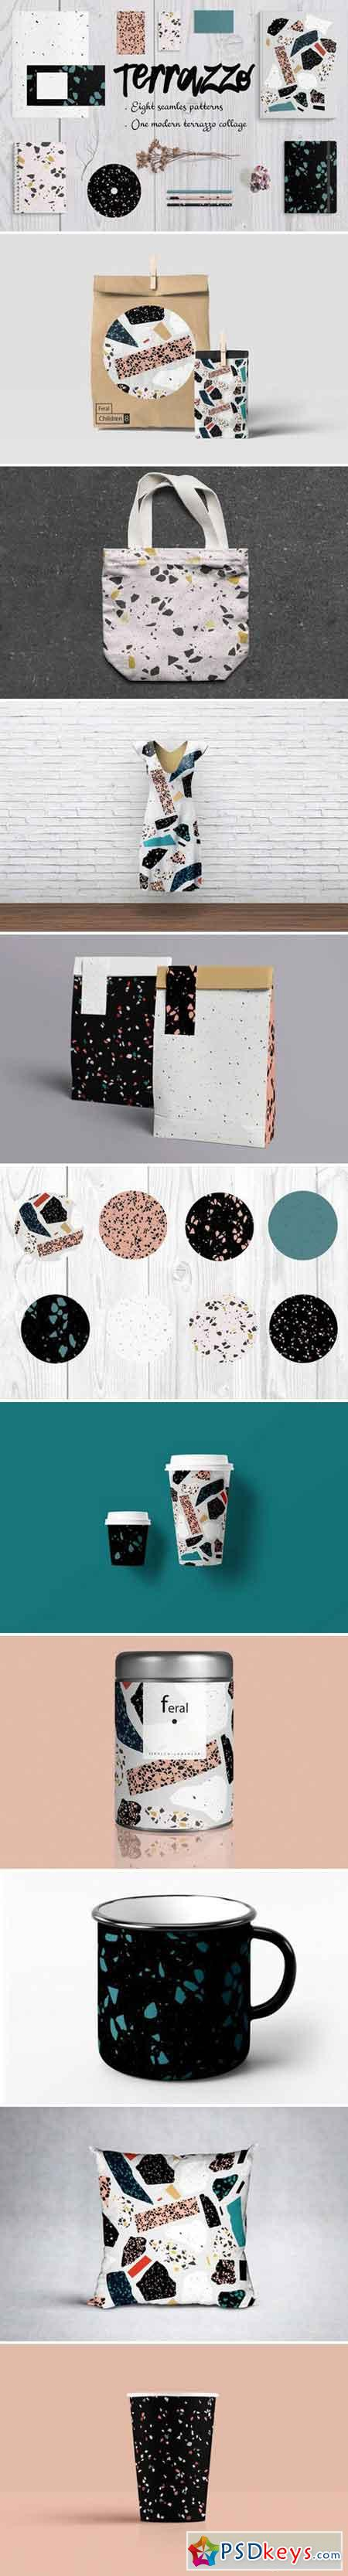 8 Terrazzo seamless patterns. Vector 2457850